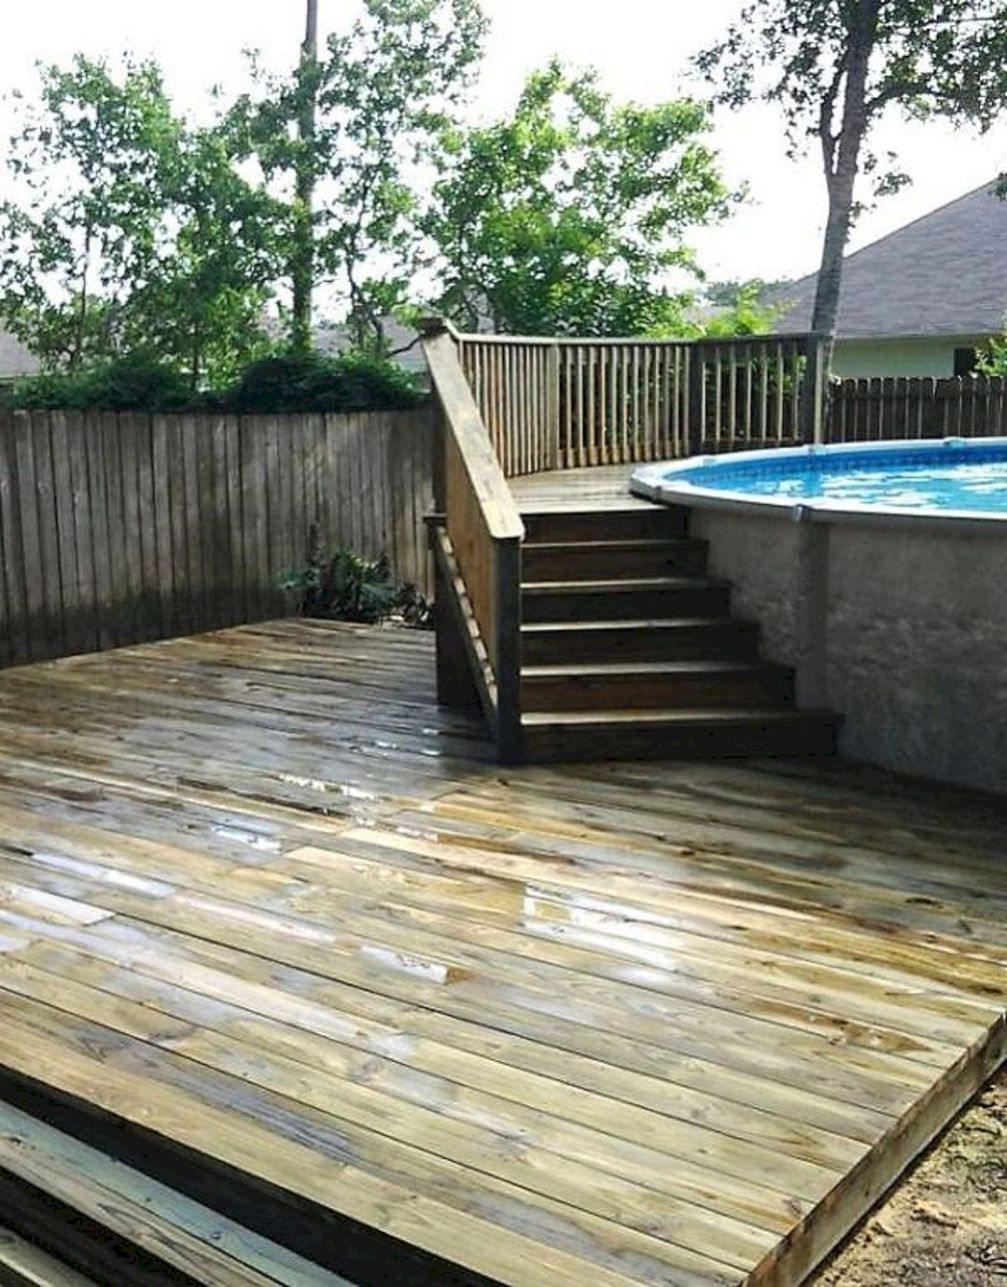 12 Clever Ways Diy Above Ground Pool Ideas On A Budget Best Above Ground Pool Above Ground Pool Landscaping Pool Landscaping